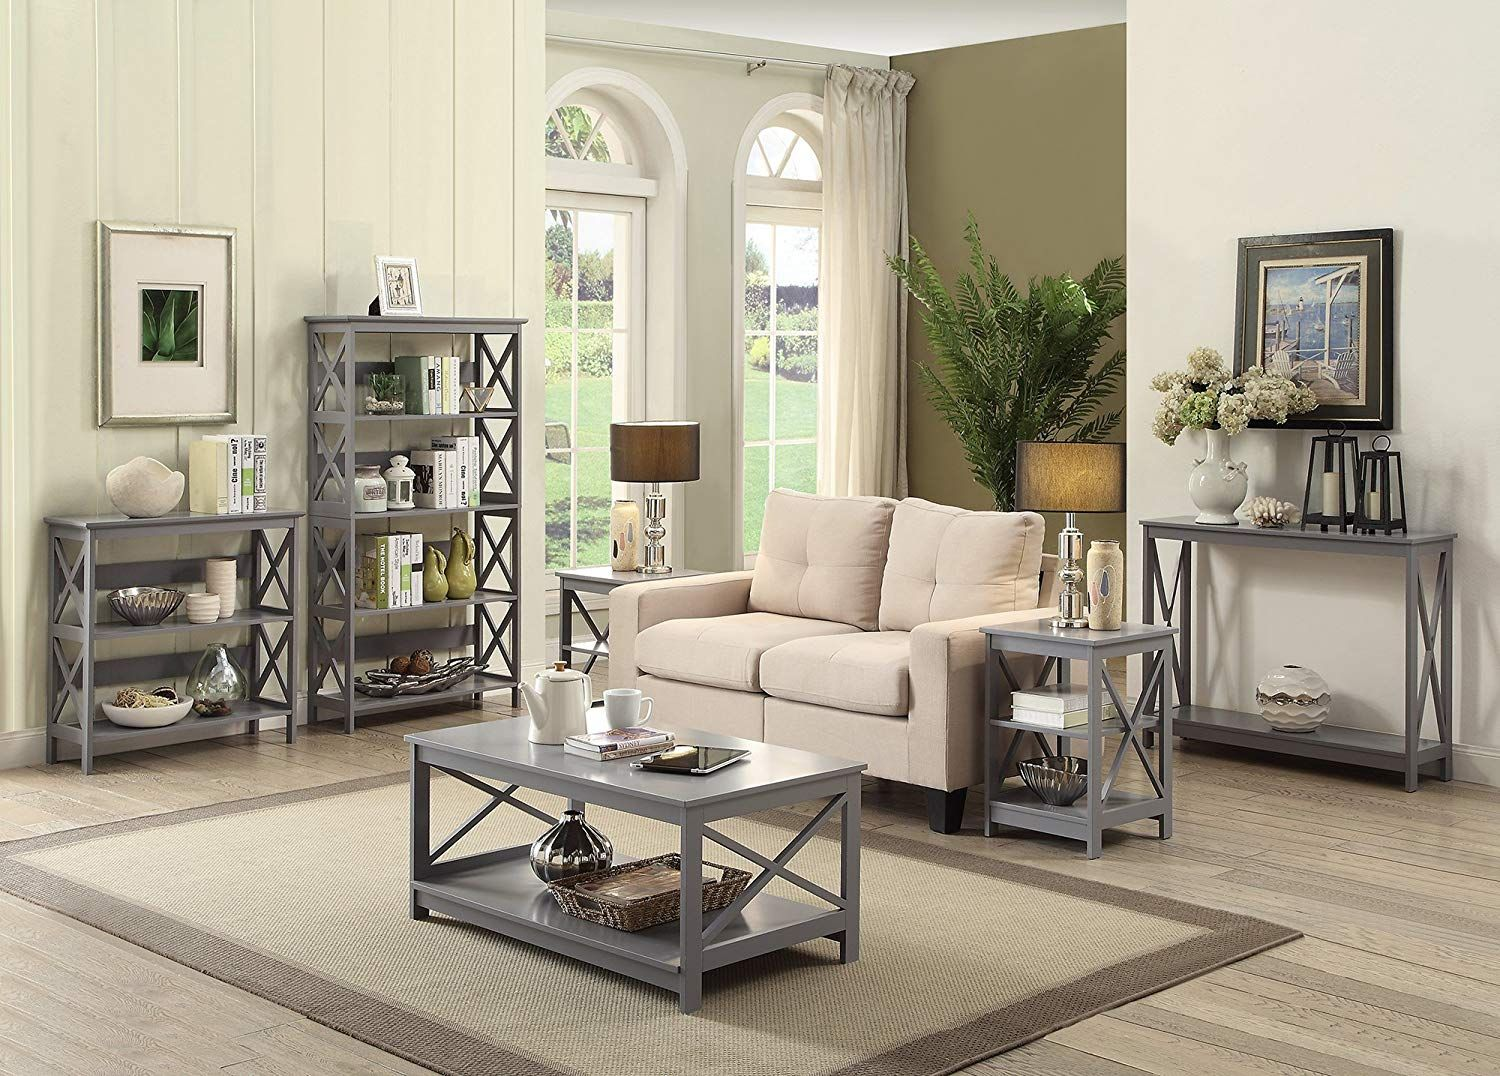 Price under 85. Coffee table grey, Furniture, Gray